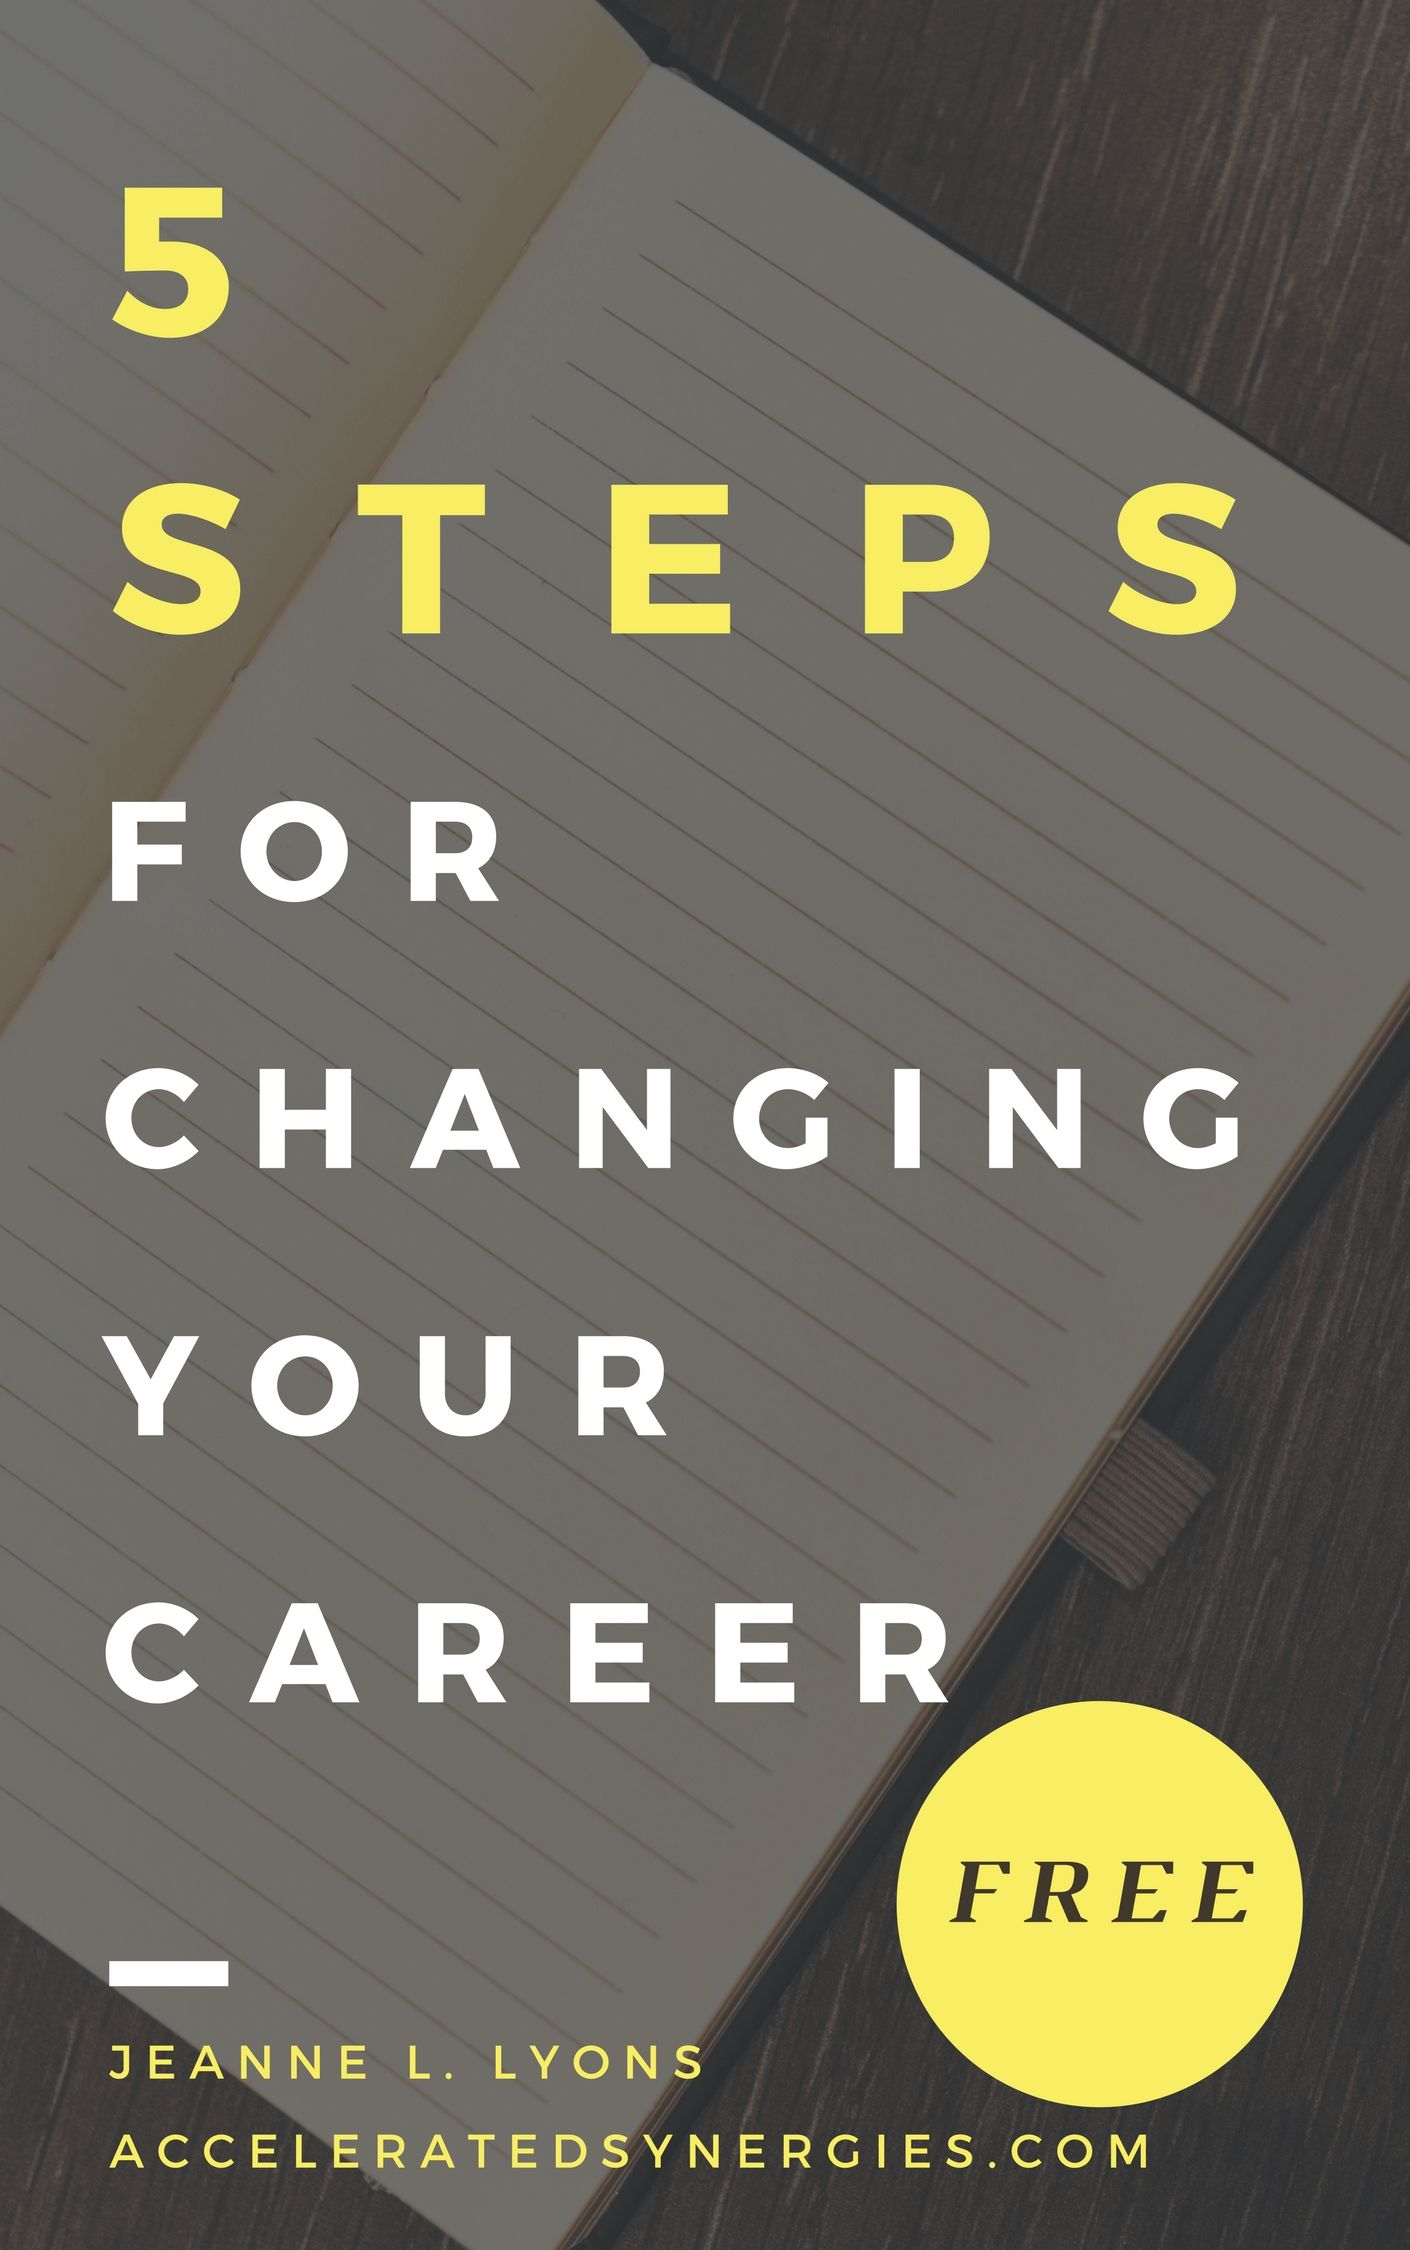 does your career need a fresh start? it's never too late to make a